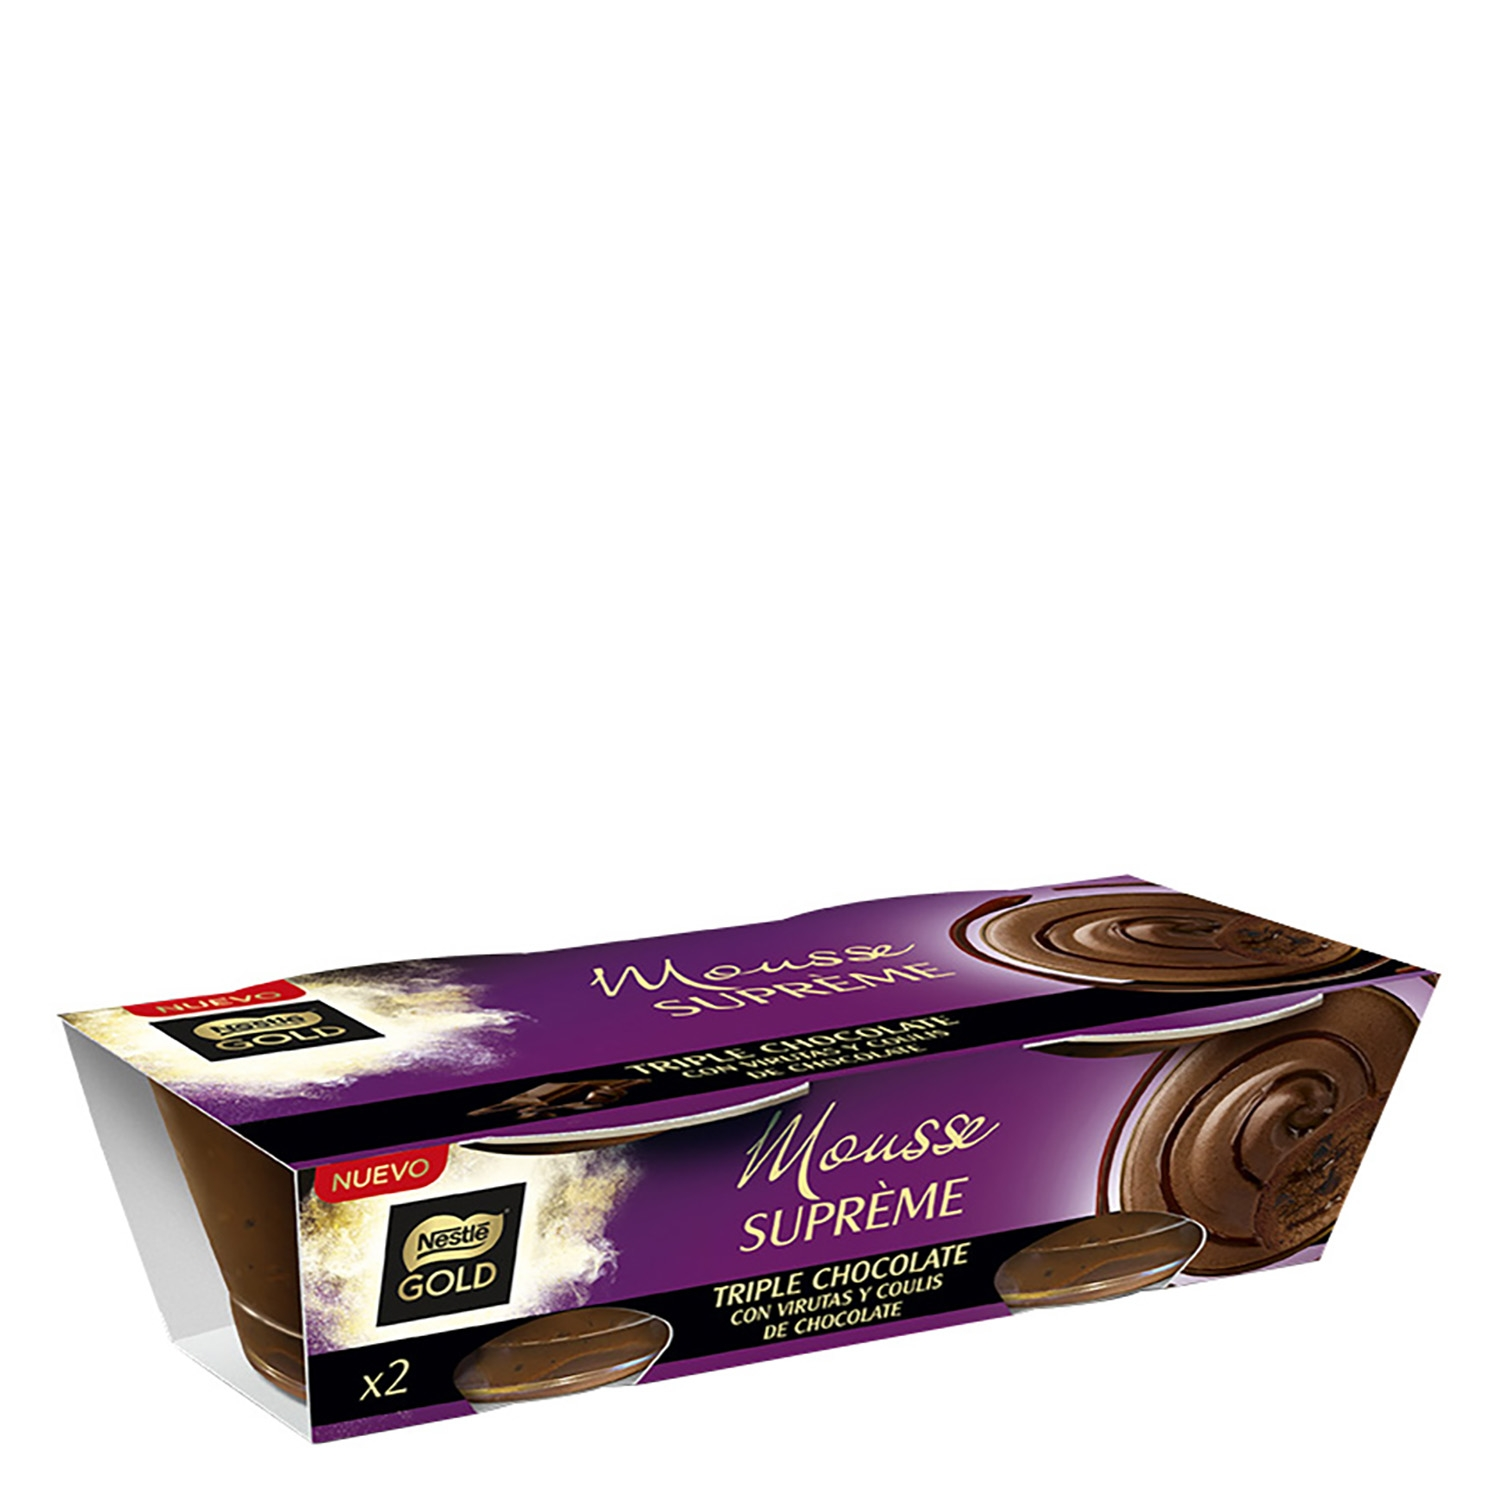 Mousse supreme triple chocolate Nestlé-Gold pack de 2 unidades de 90 g.